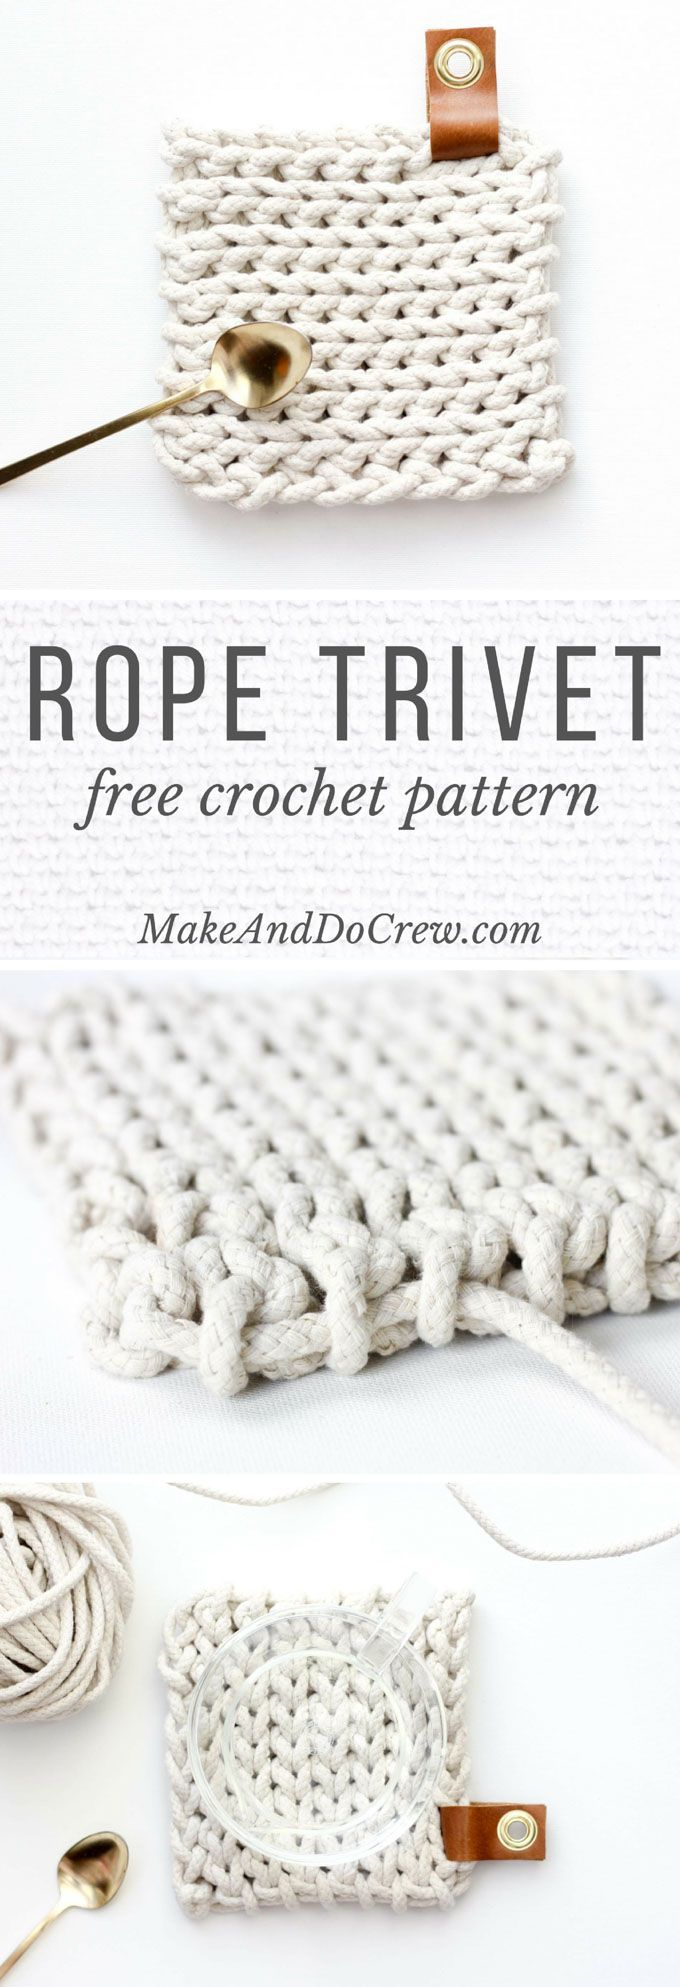 Clothesline Trivet - Free Modern Crochet Pattern Using Rope ...